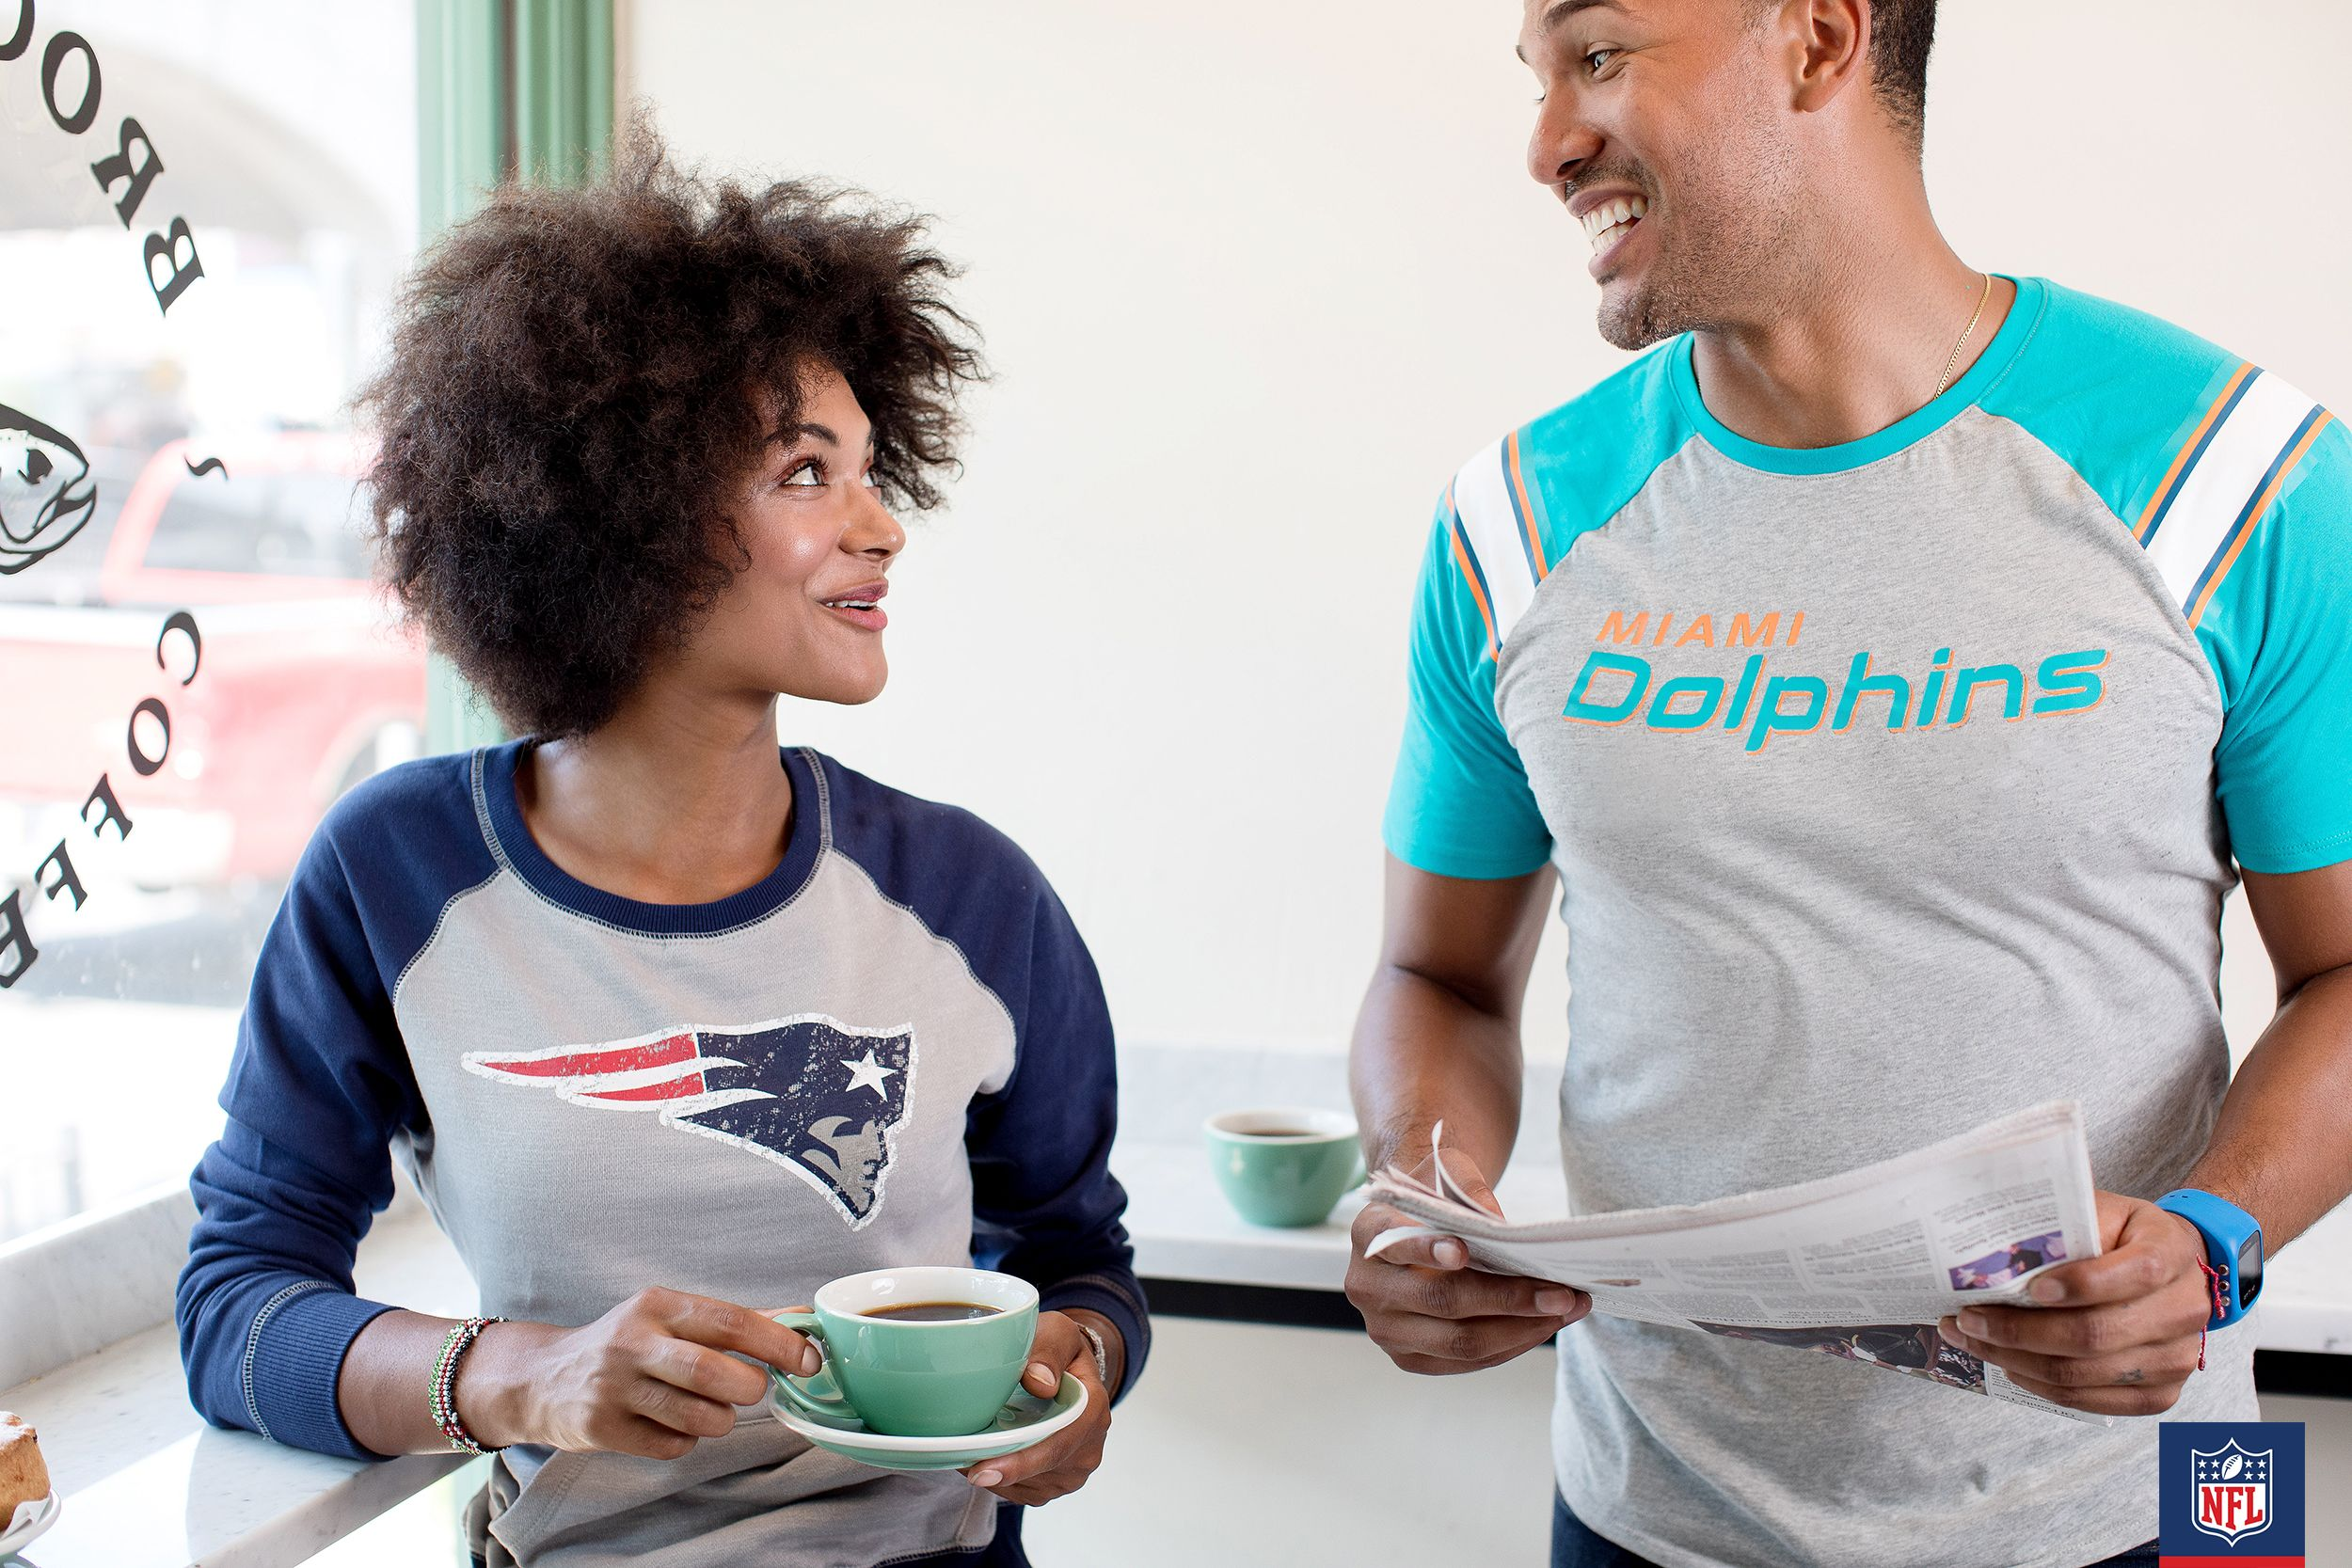 Miami vs. New England rivalry in the house?! Whether you rep the New England Patriots or the Miami Dolphins, you can look cool and casual all day long.